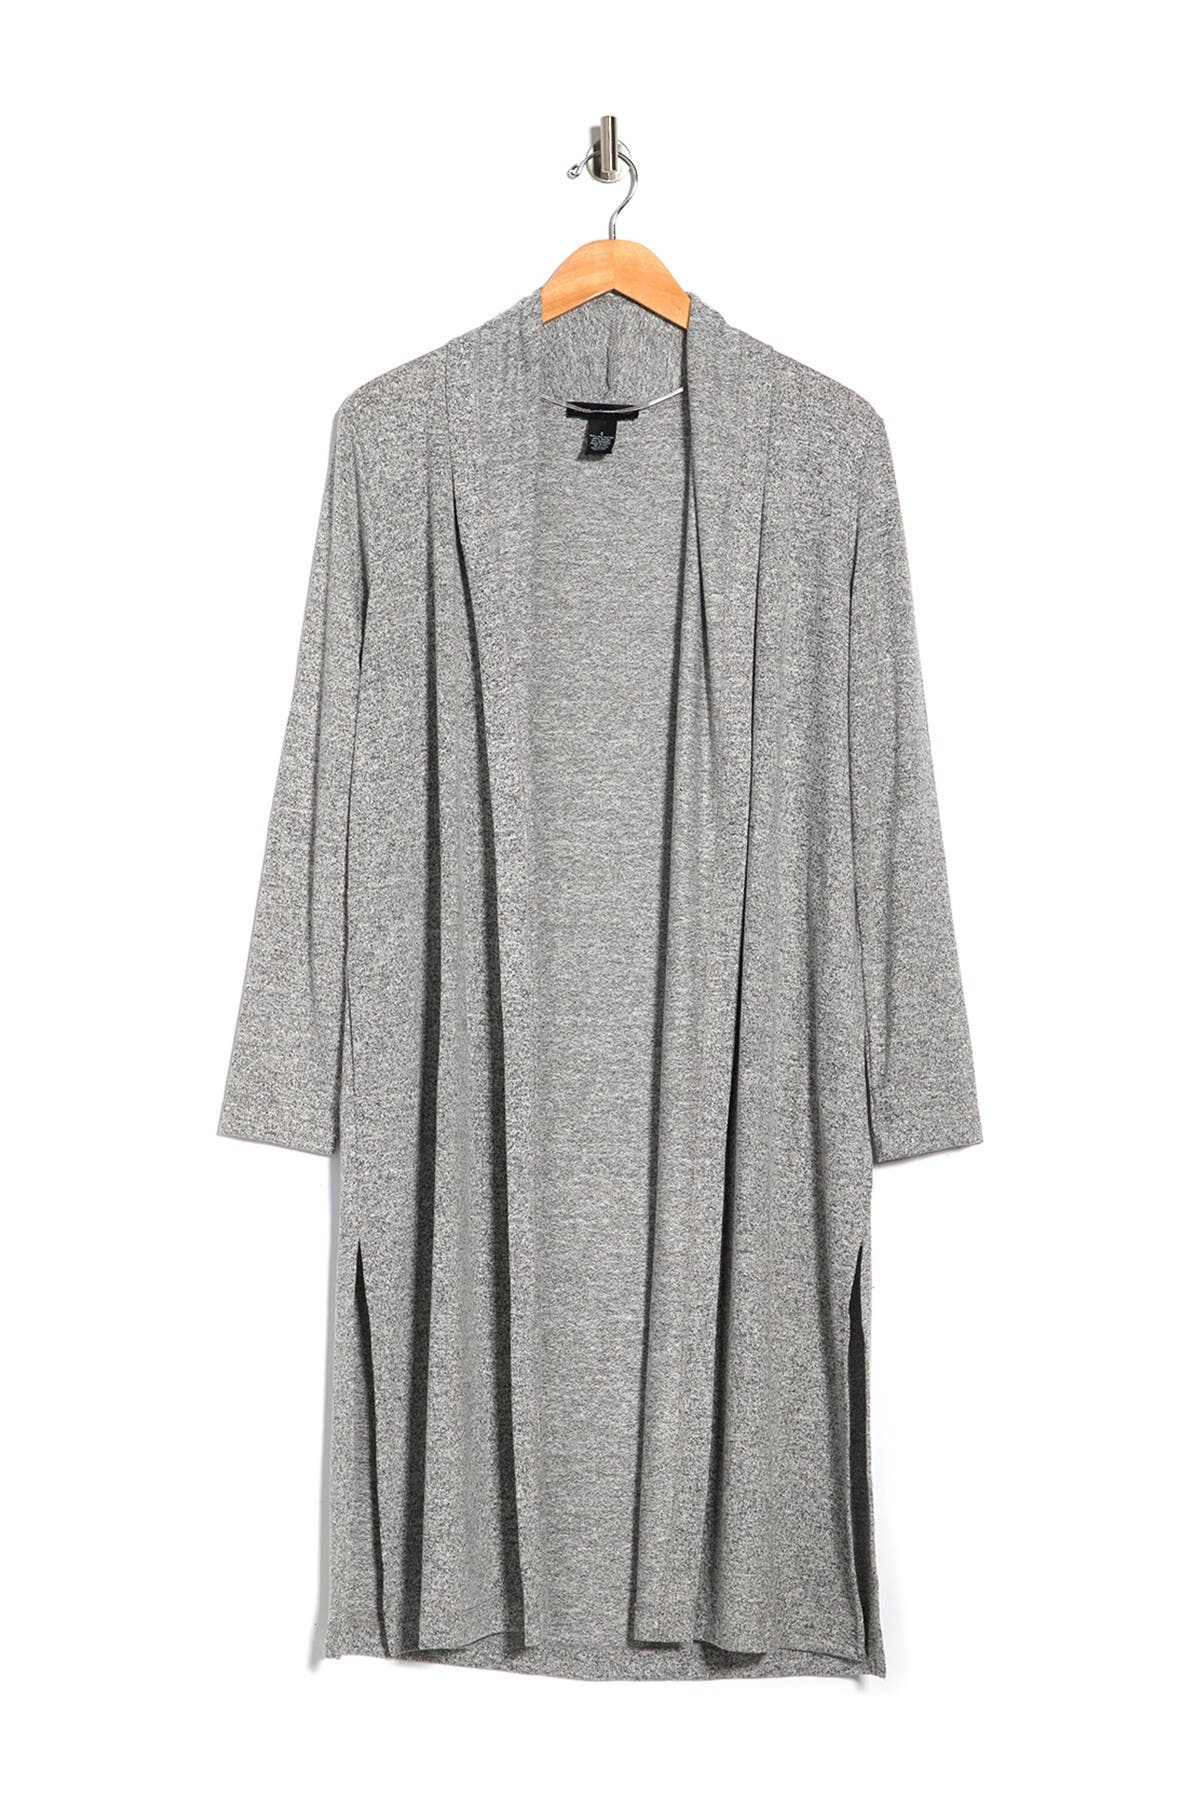 Image of Joan Vass Draped Knit Duster Cardigan